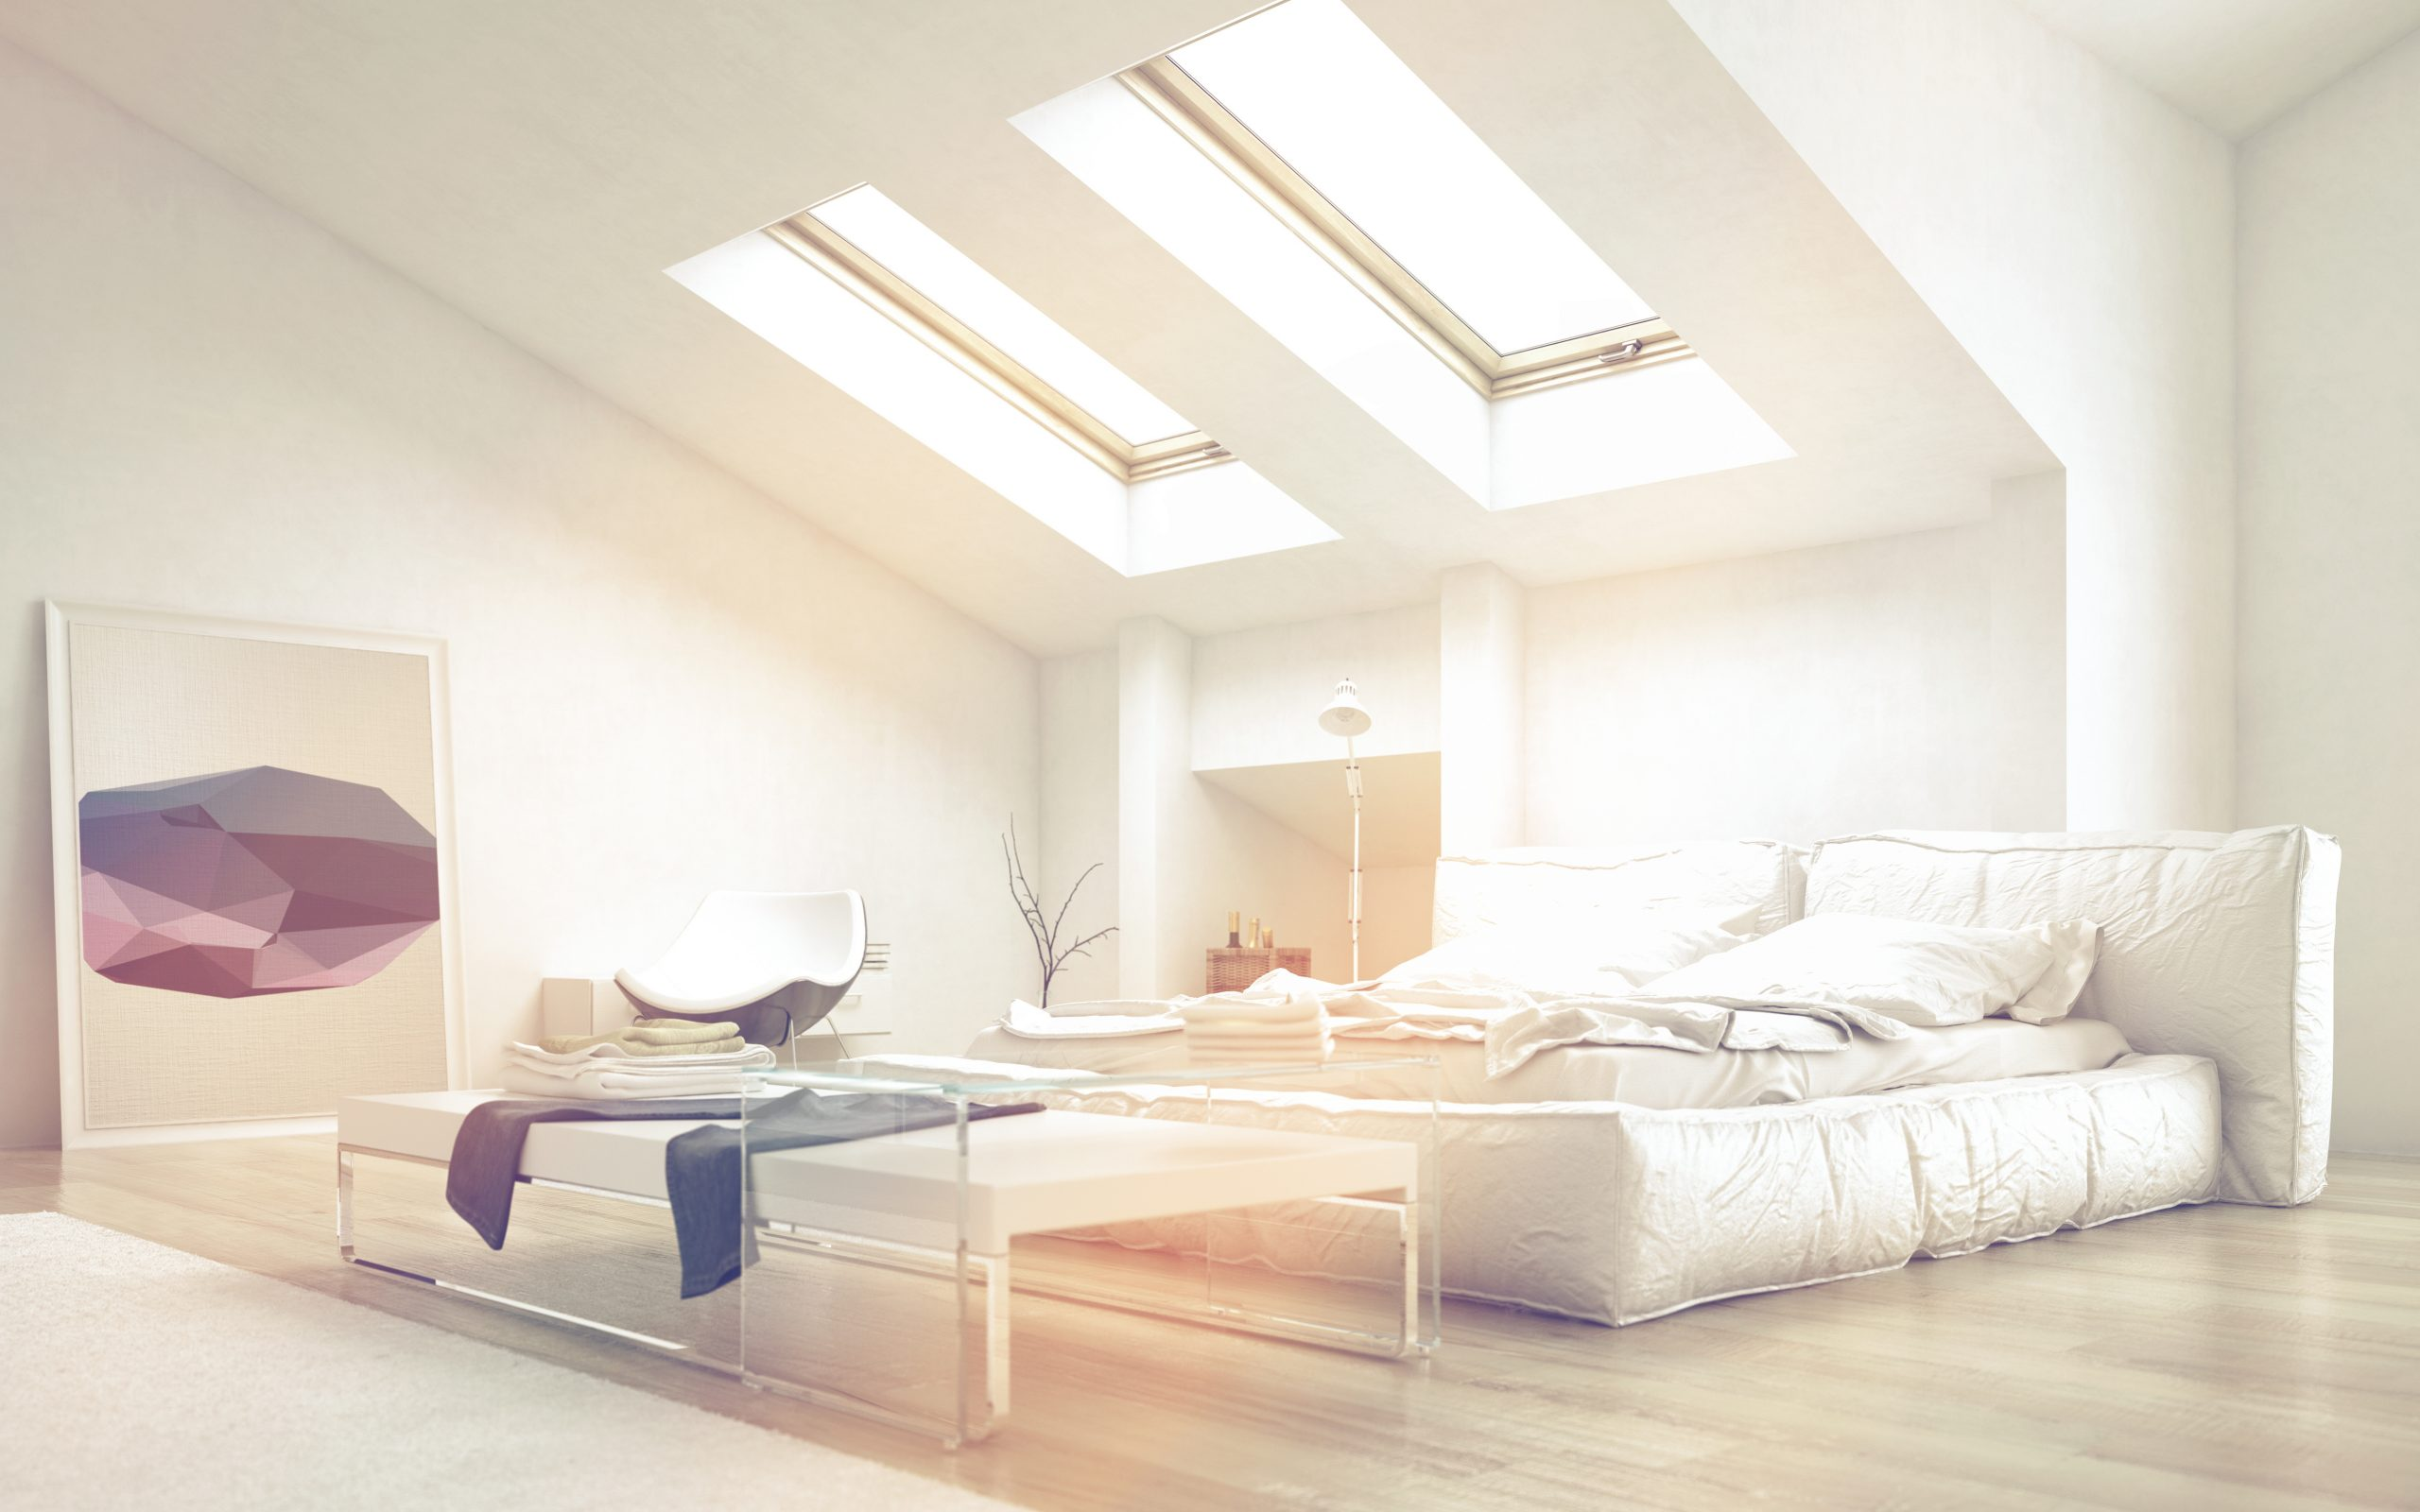 Solatube skylight in a living room.